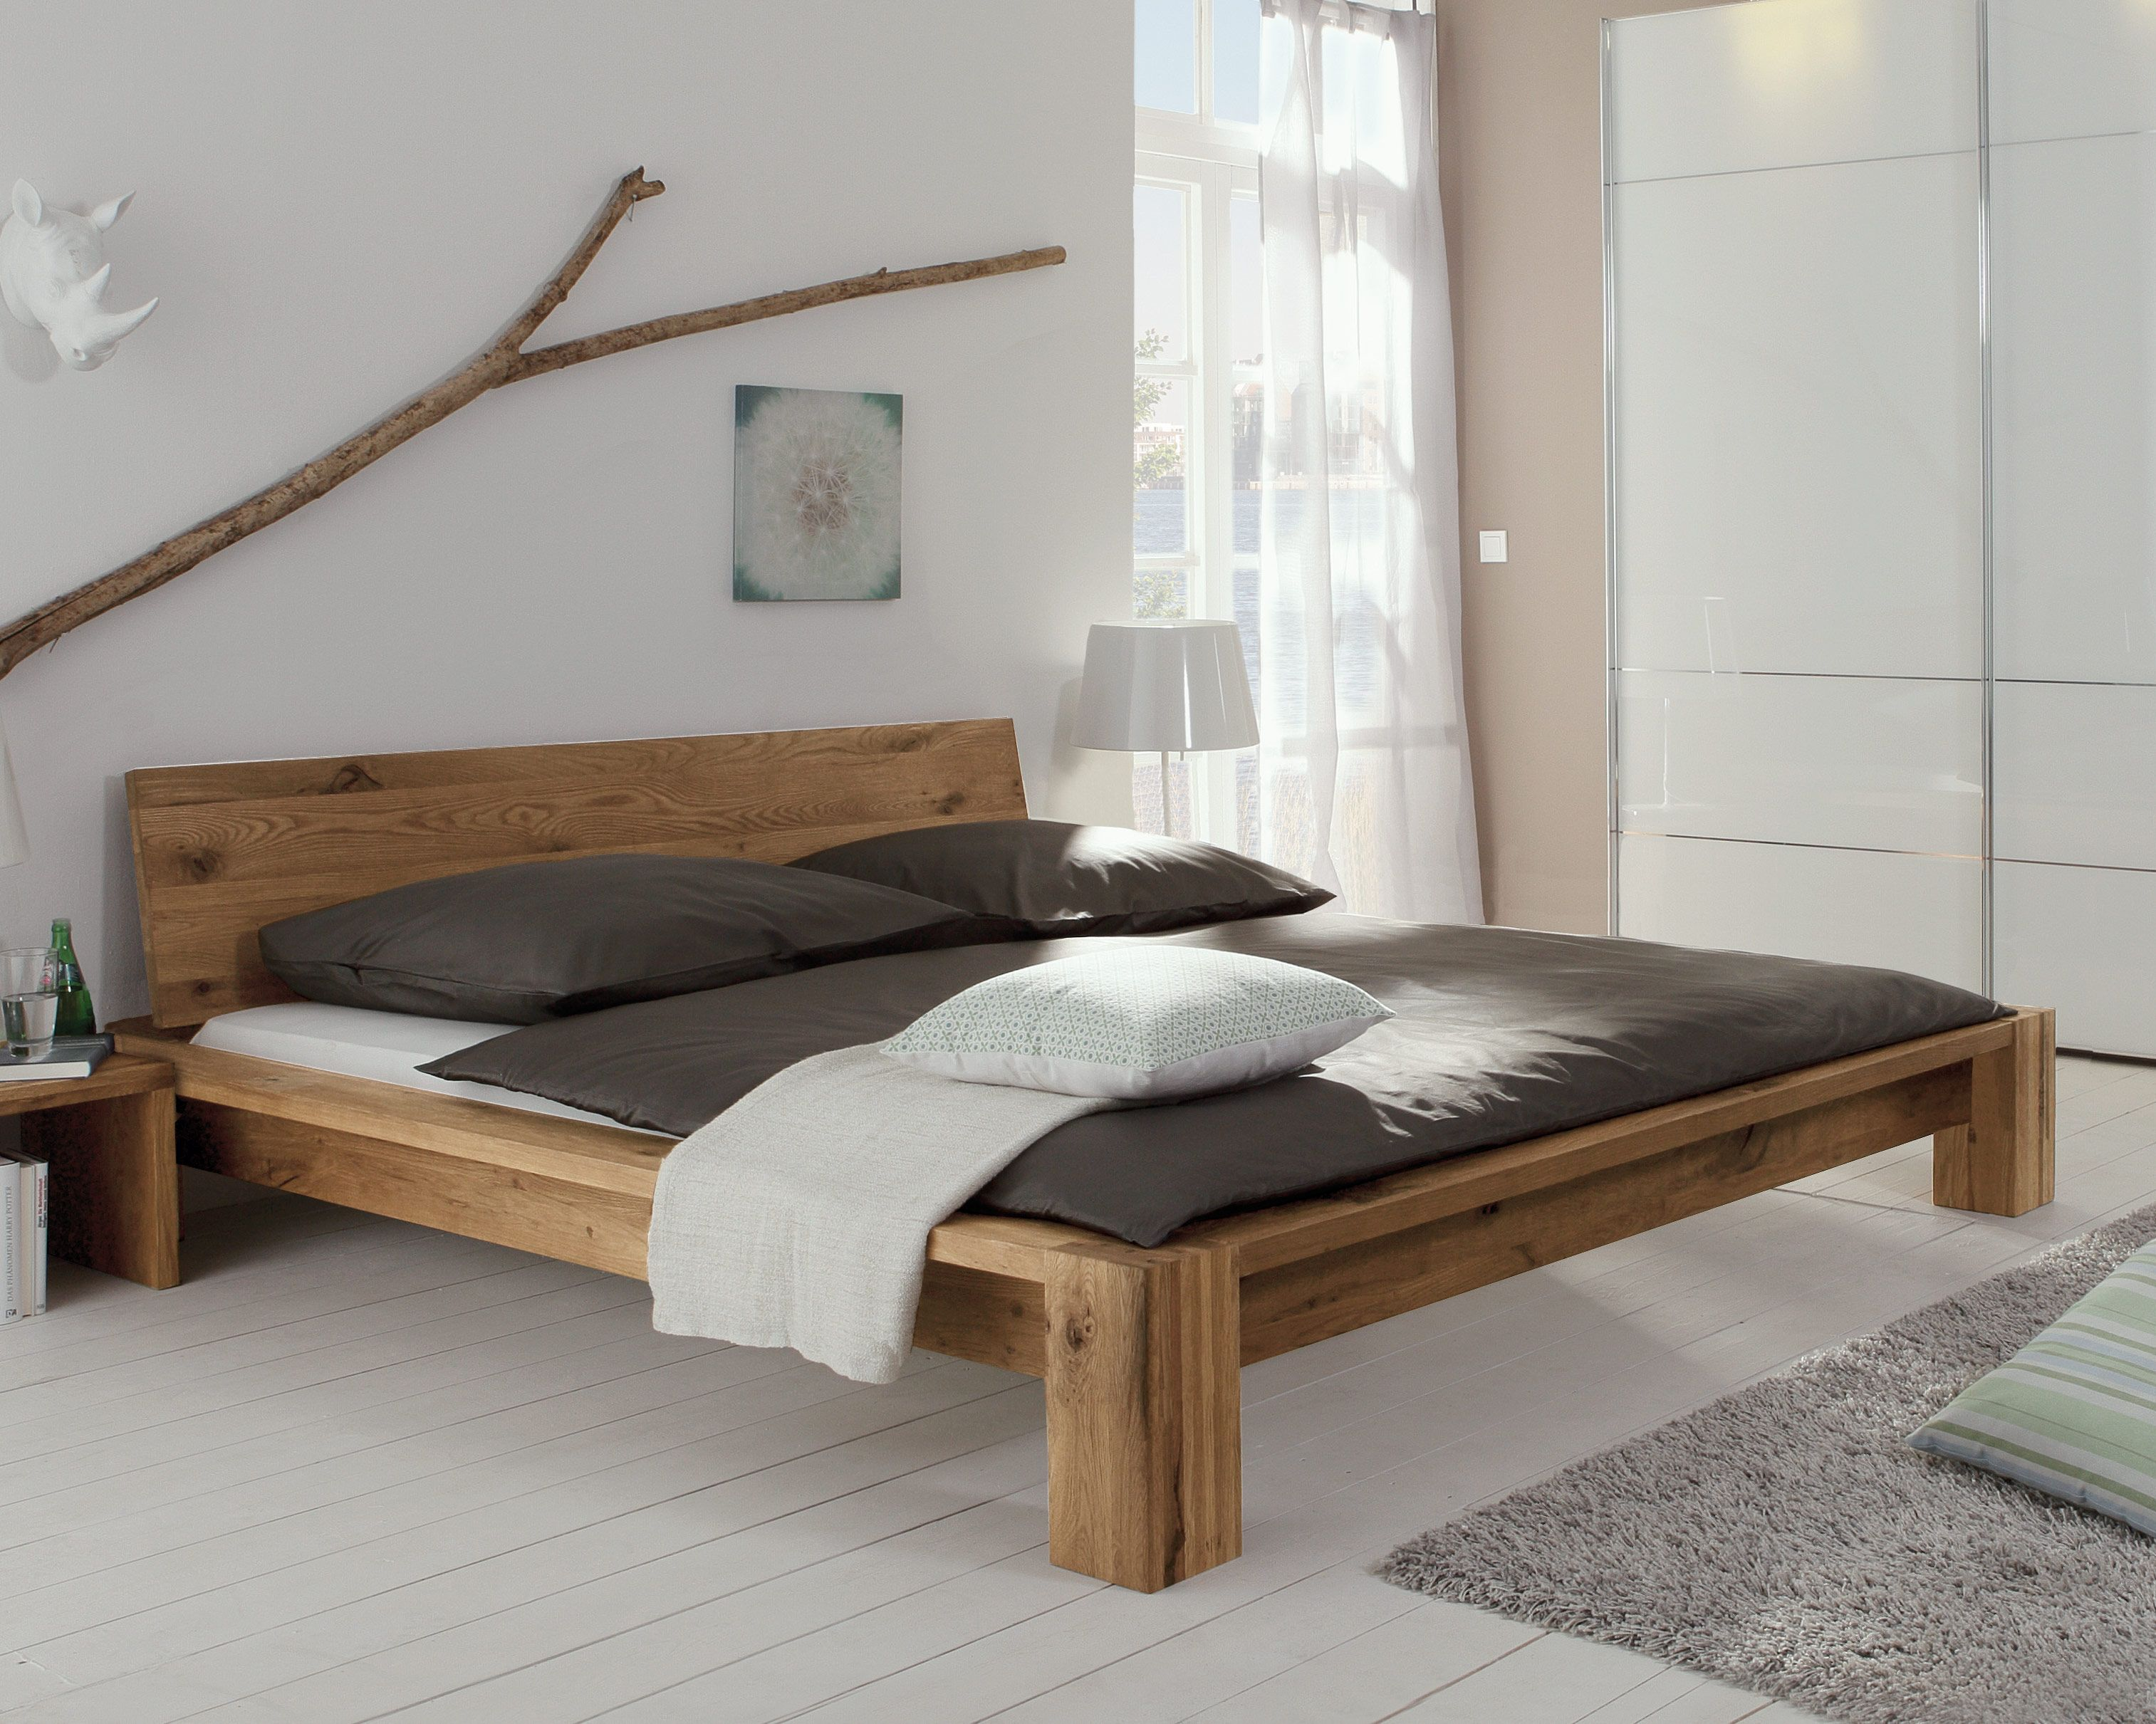 bett perugia massivholz welt pinterest bett bett holz und schlafzimmer. Black Bedroom Furniture Sets. Home Design Ideas